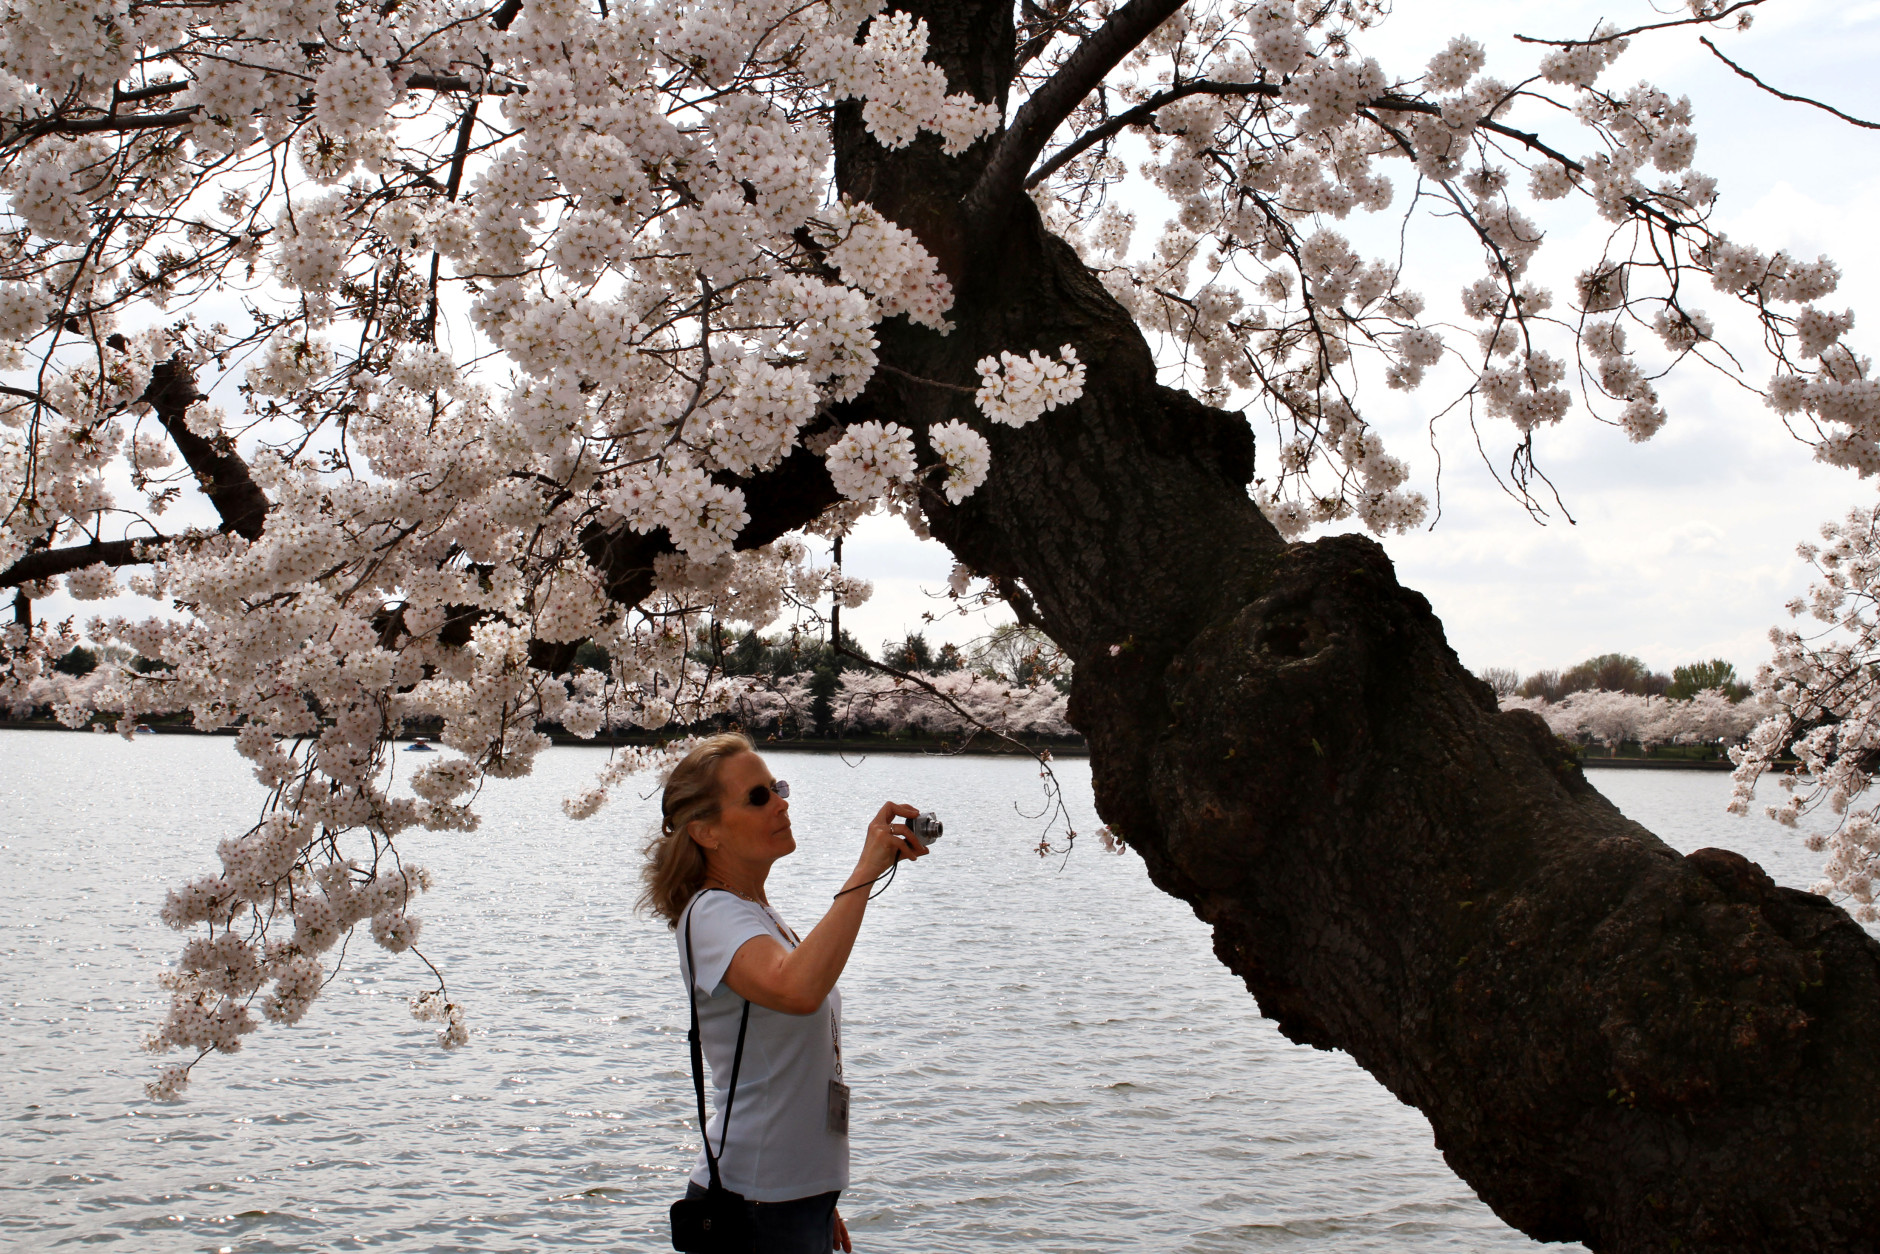 In this photo taken, Monday, March 19, 2012, a woman takes pictures of the oldest cherry blossom trees along the tidal basin in Washington. The pink and white cherry blossoms that color the U.S. capital and draw a million visitors each spring began with trees that have survived for a century. It was 100 years ago this month when first lady Helen Taft and the Viscountess Chinda, wife of the Japanese Ambassador, planted two Yoshino cherry trees on the bank of Washington's Tidal Basin. They were the first of 3,000 planted as part of a gift from the city of Tokyo as a symbol of friendship. The original pair still stands, along with about 100 of the original trees transported from Japan. (AP Photo/Jacquelyn Martin)